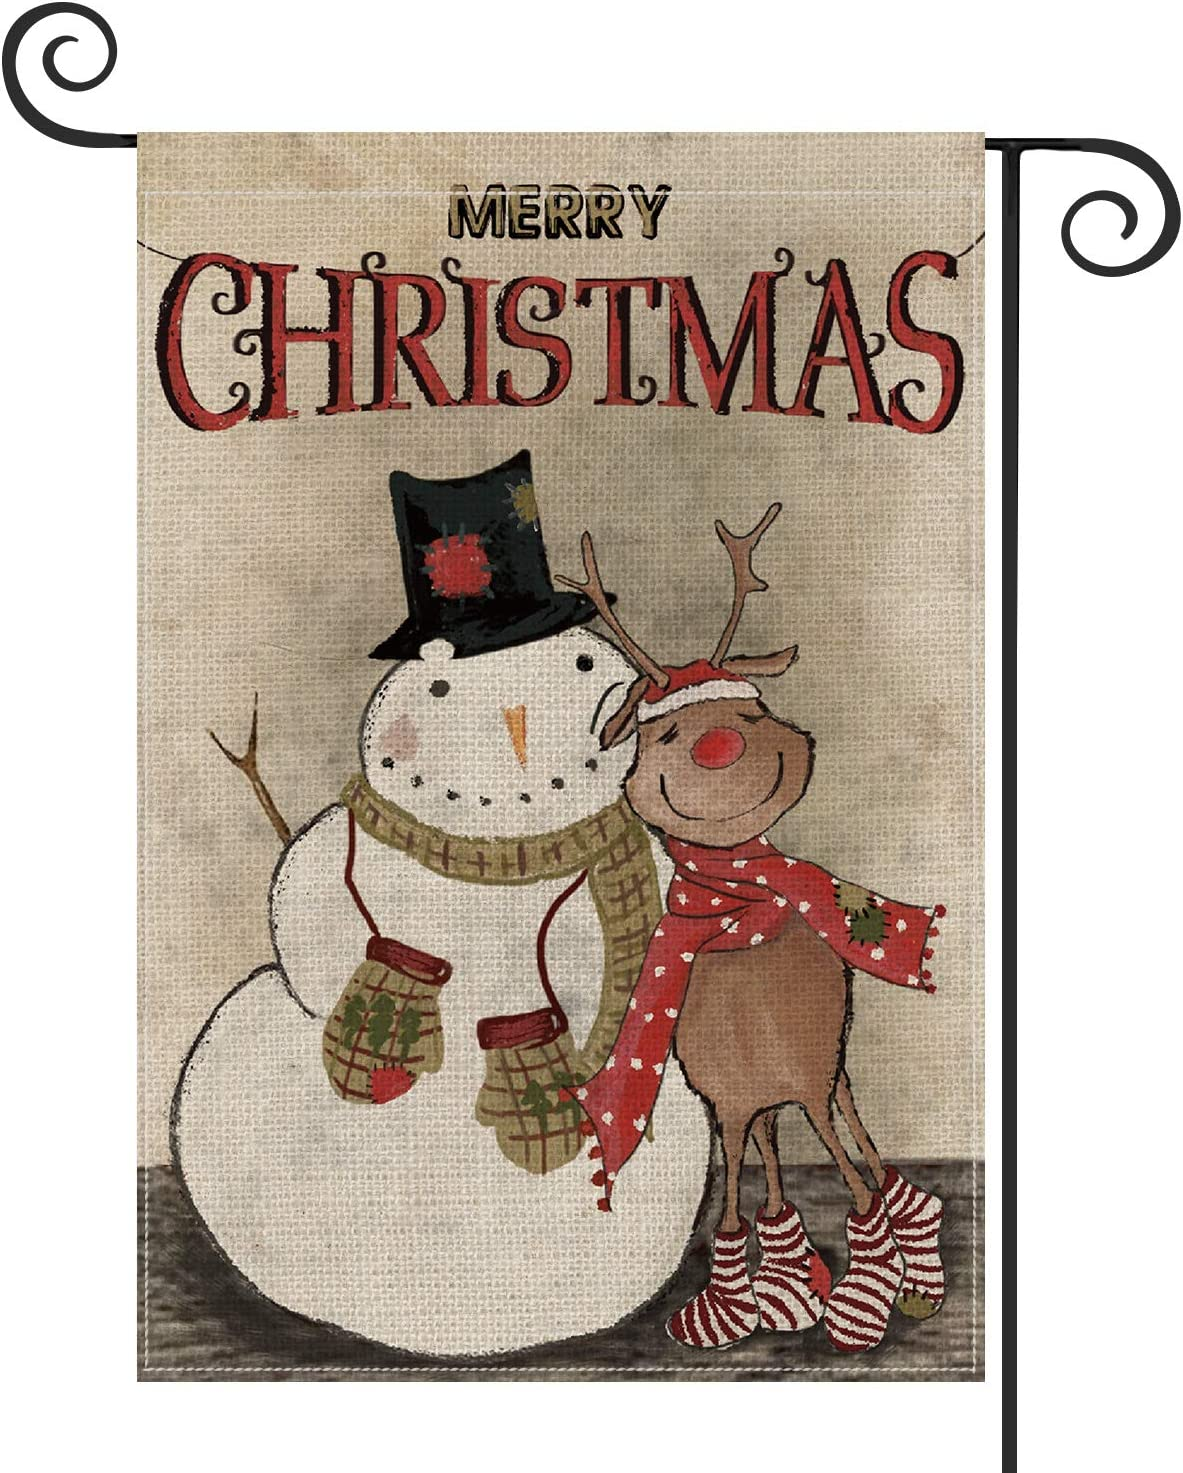 AVOIN Merry Christmas Garden Flag Vertical Double Sized, Winter Holiday Snowman Reindeer Yard Outdoor Decoration 12.5 x 18 Inch